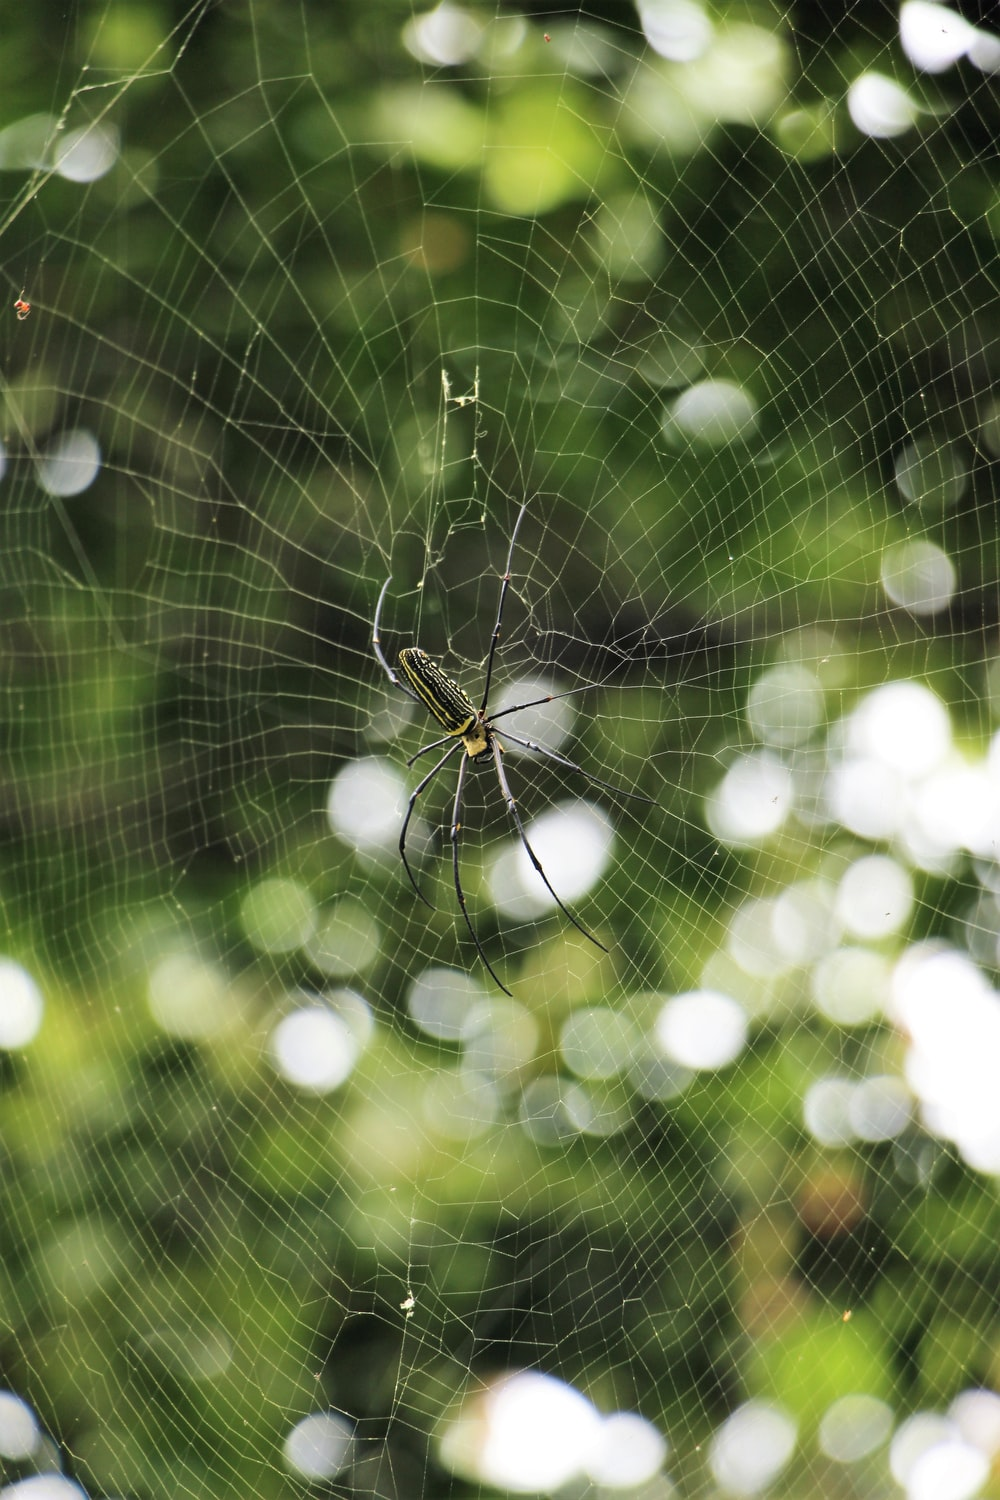 spider at web in forest